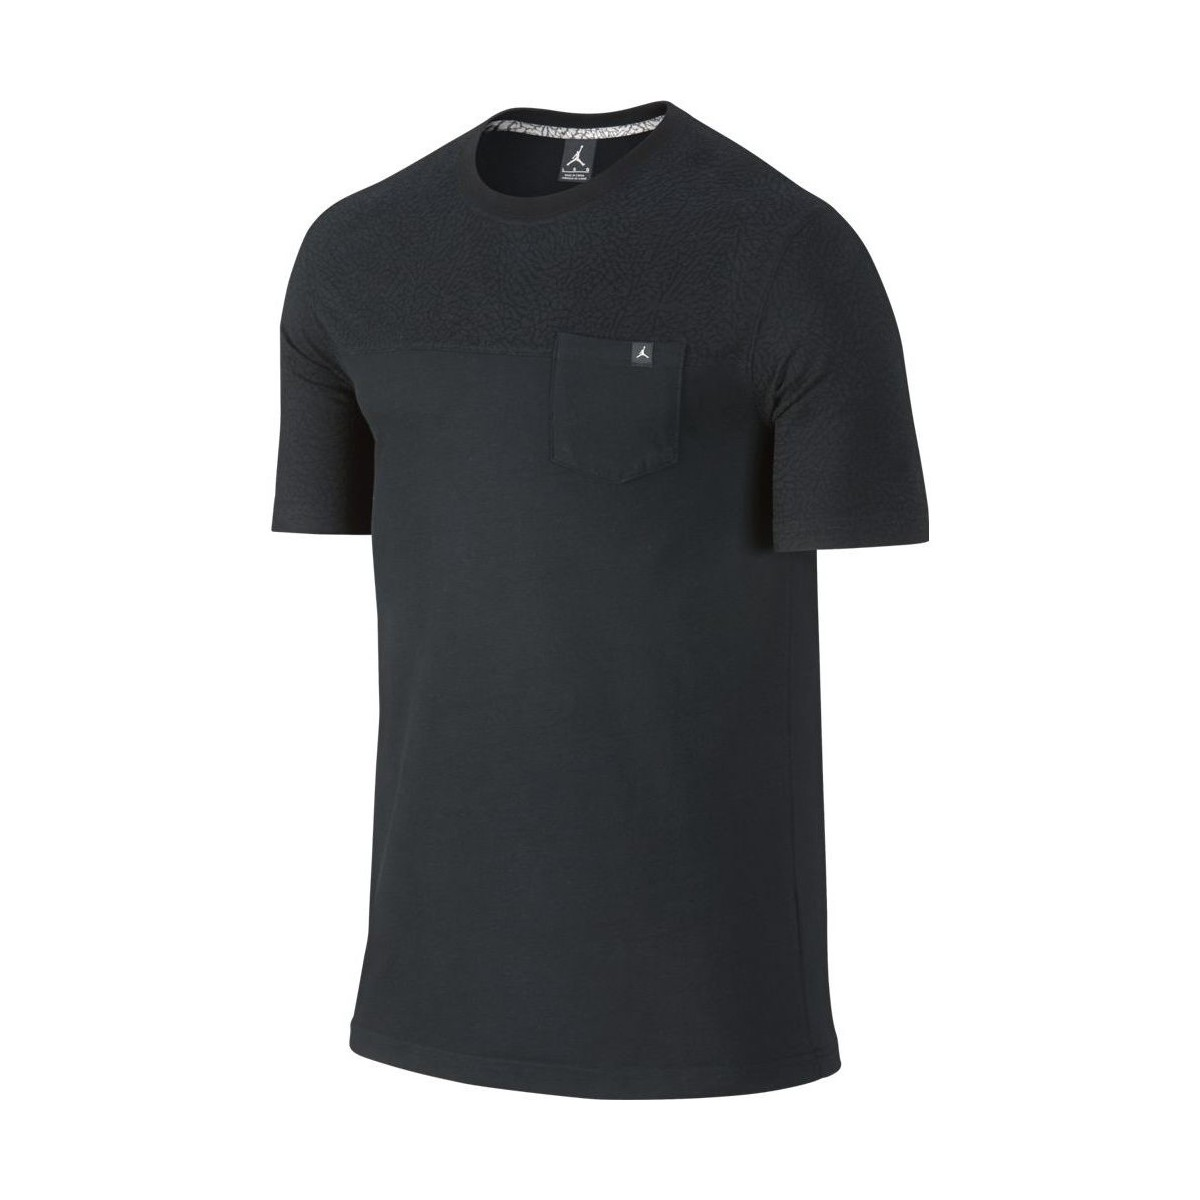 Nike T-Shirt Pocket tee